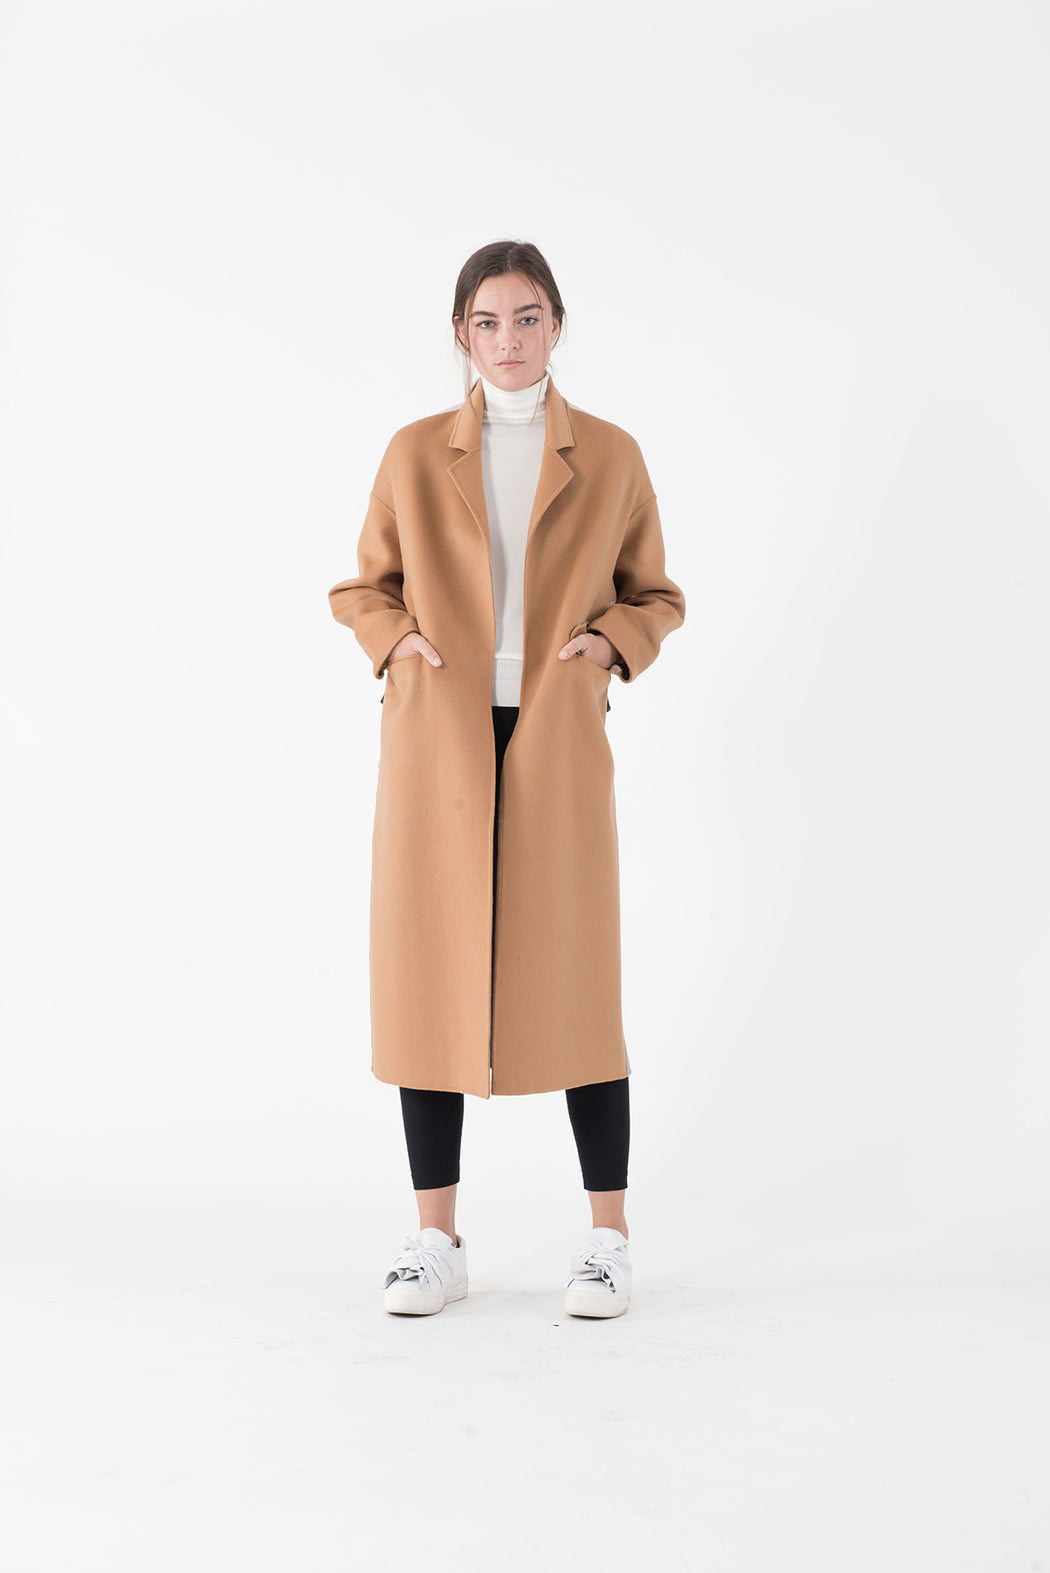 MT025 Mood board cashmere coat